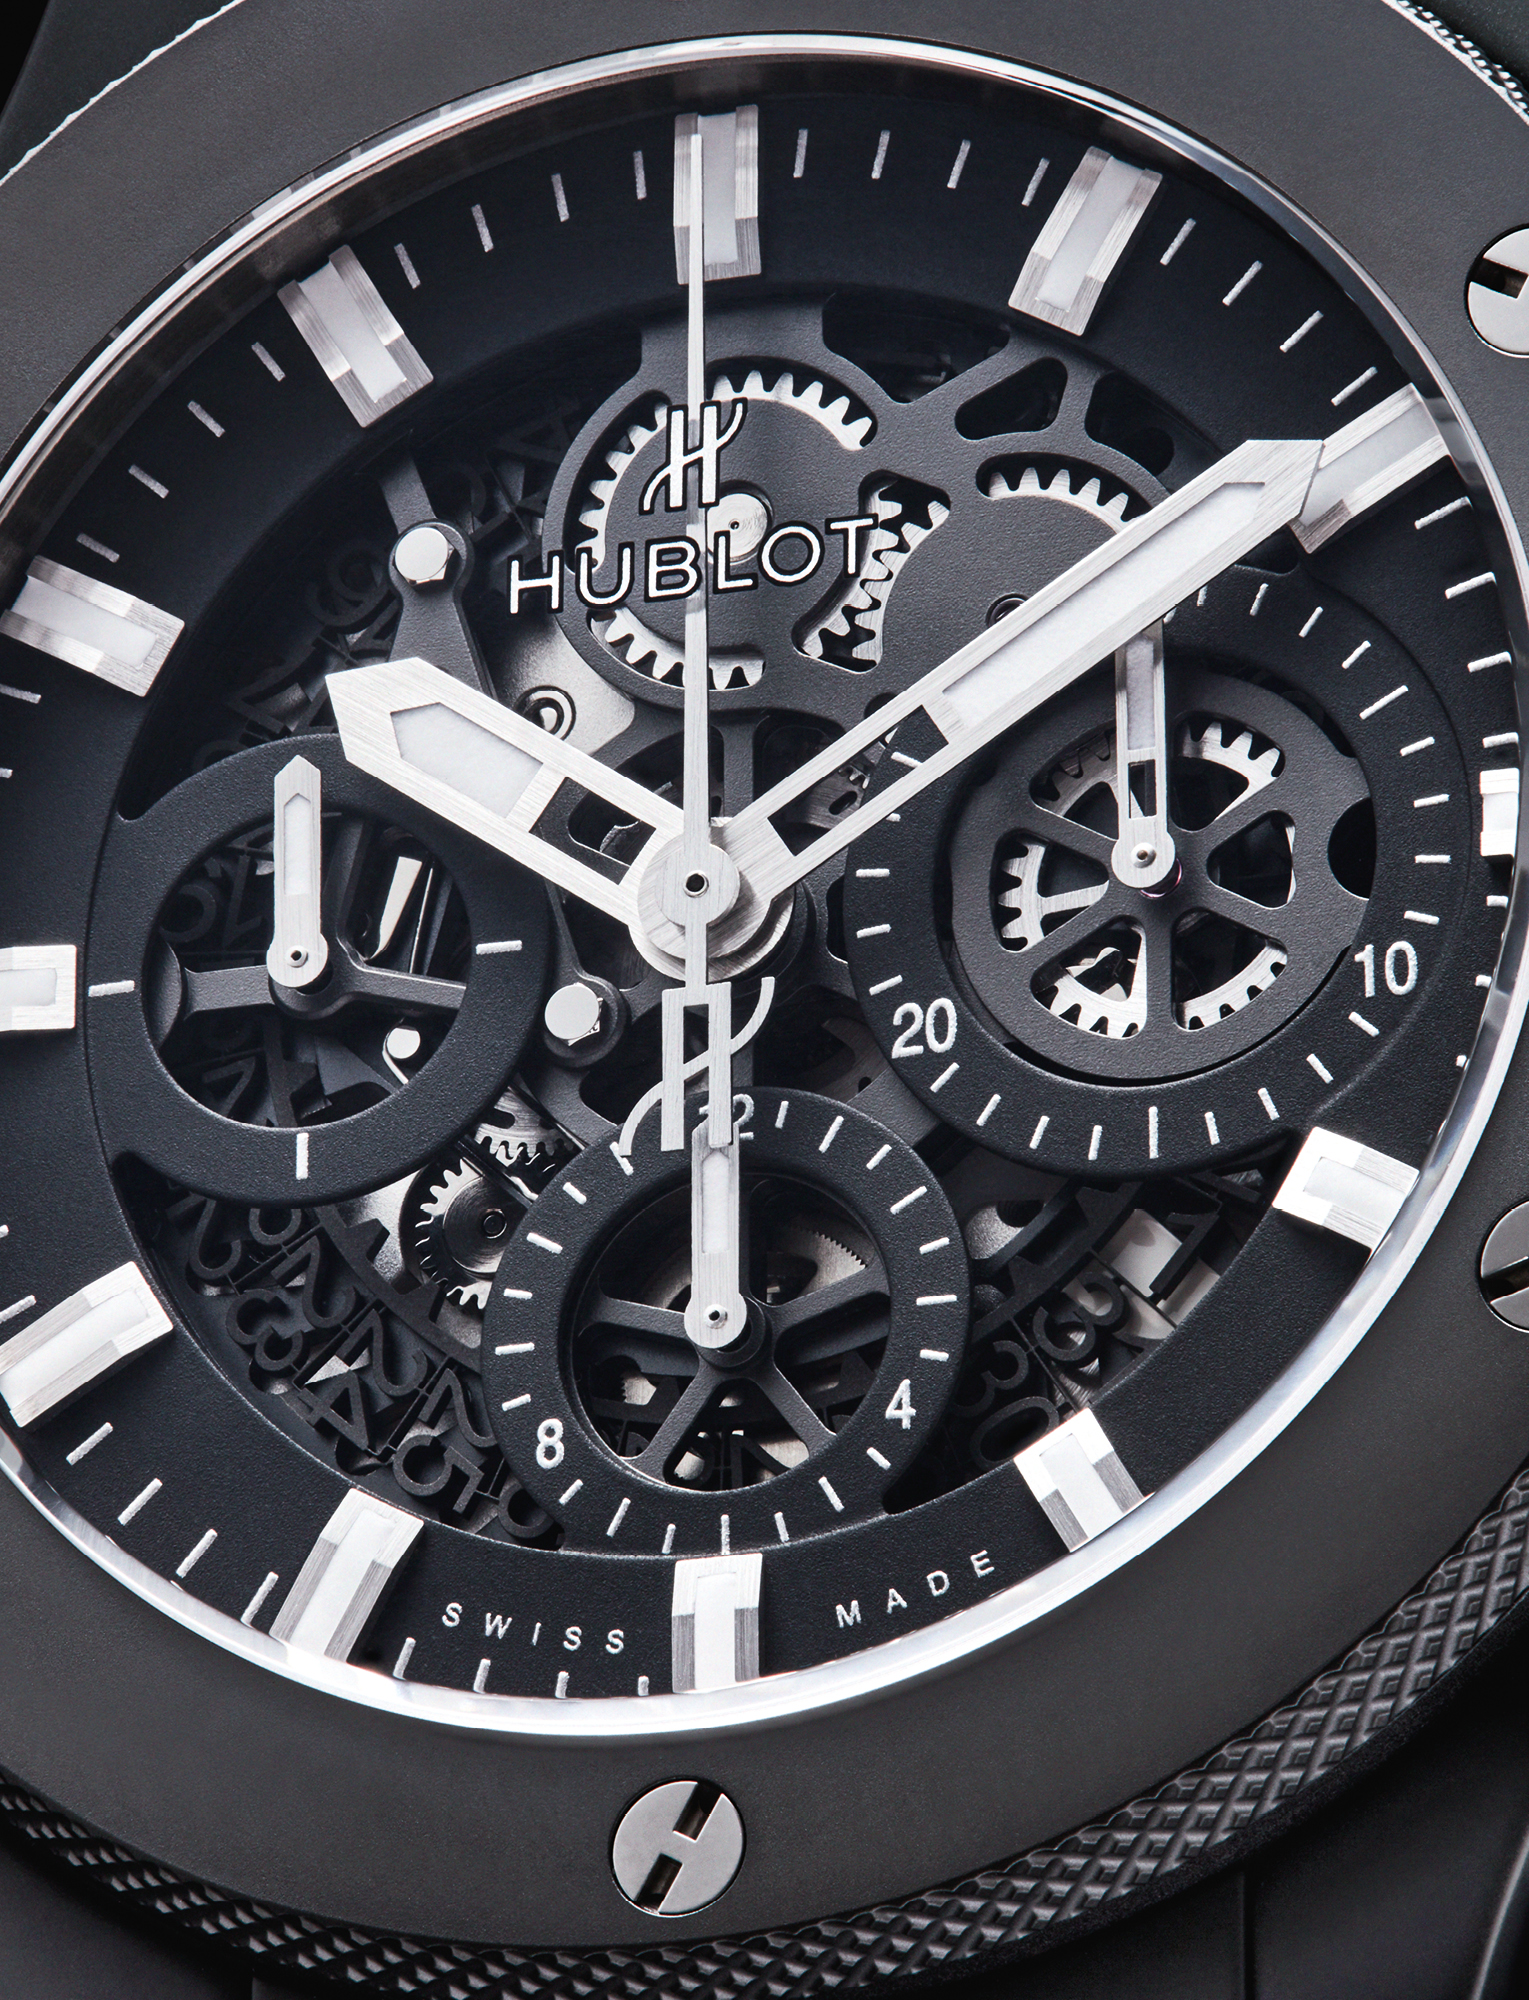 With a matte black skeleton dial, the Hublot Big Bang Aerobang Black Magic features a micro-blasted black ceramic case and bezel, a HUB4214 movement and is available on a black rubber and gummy alligator strap. £16,800, HUBLOT